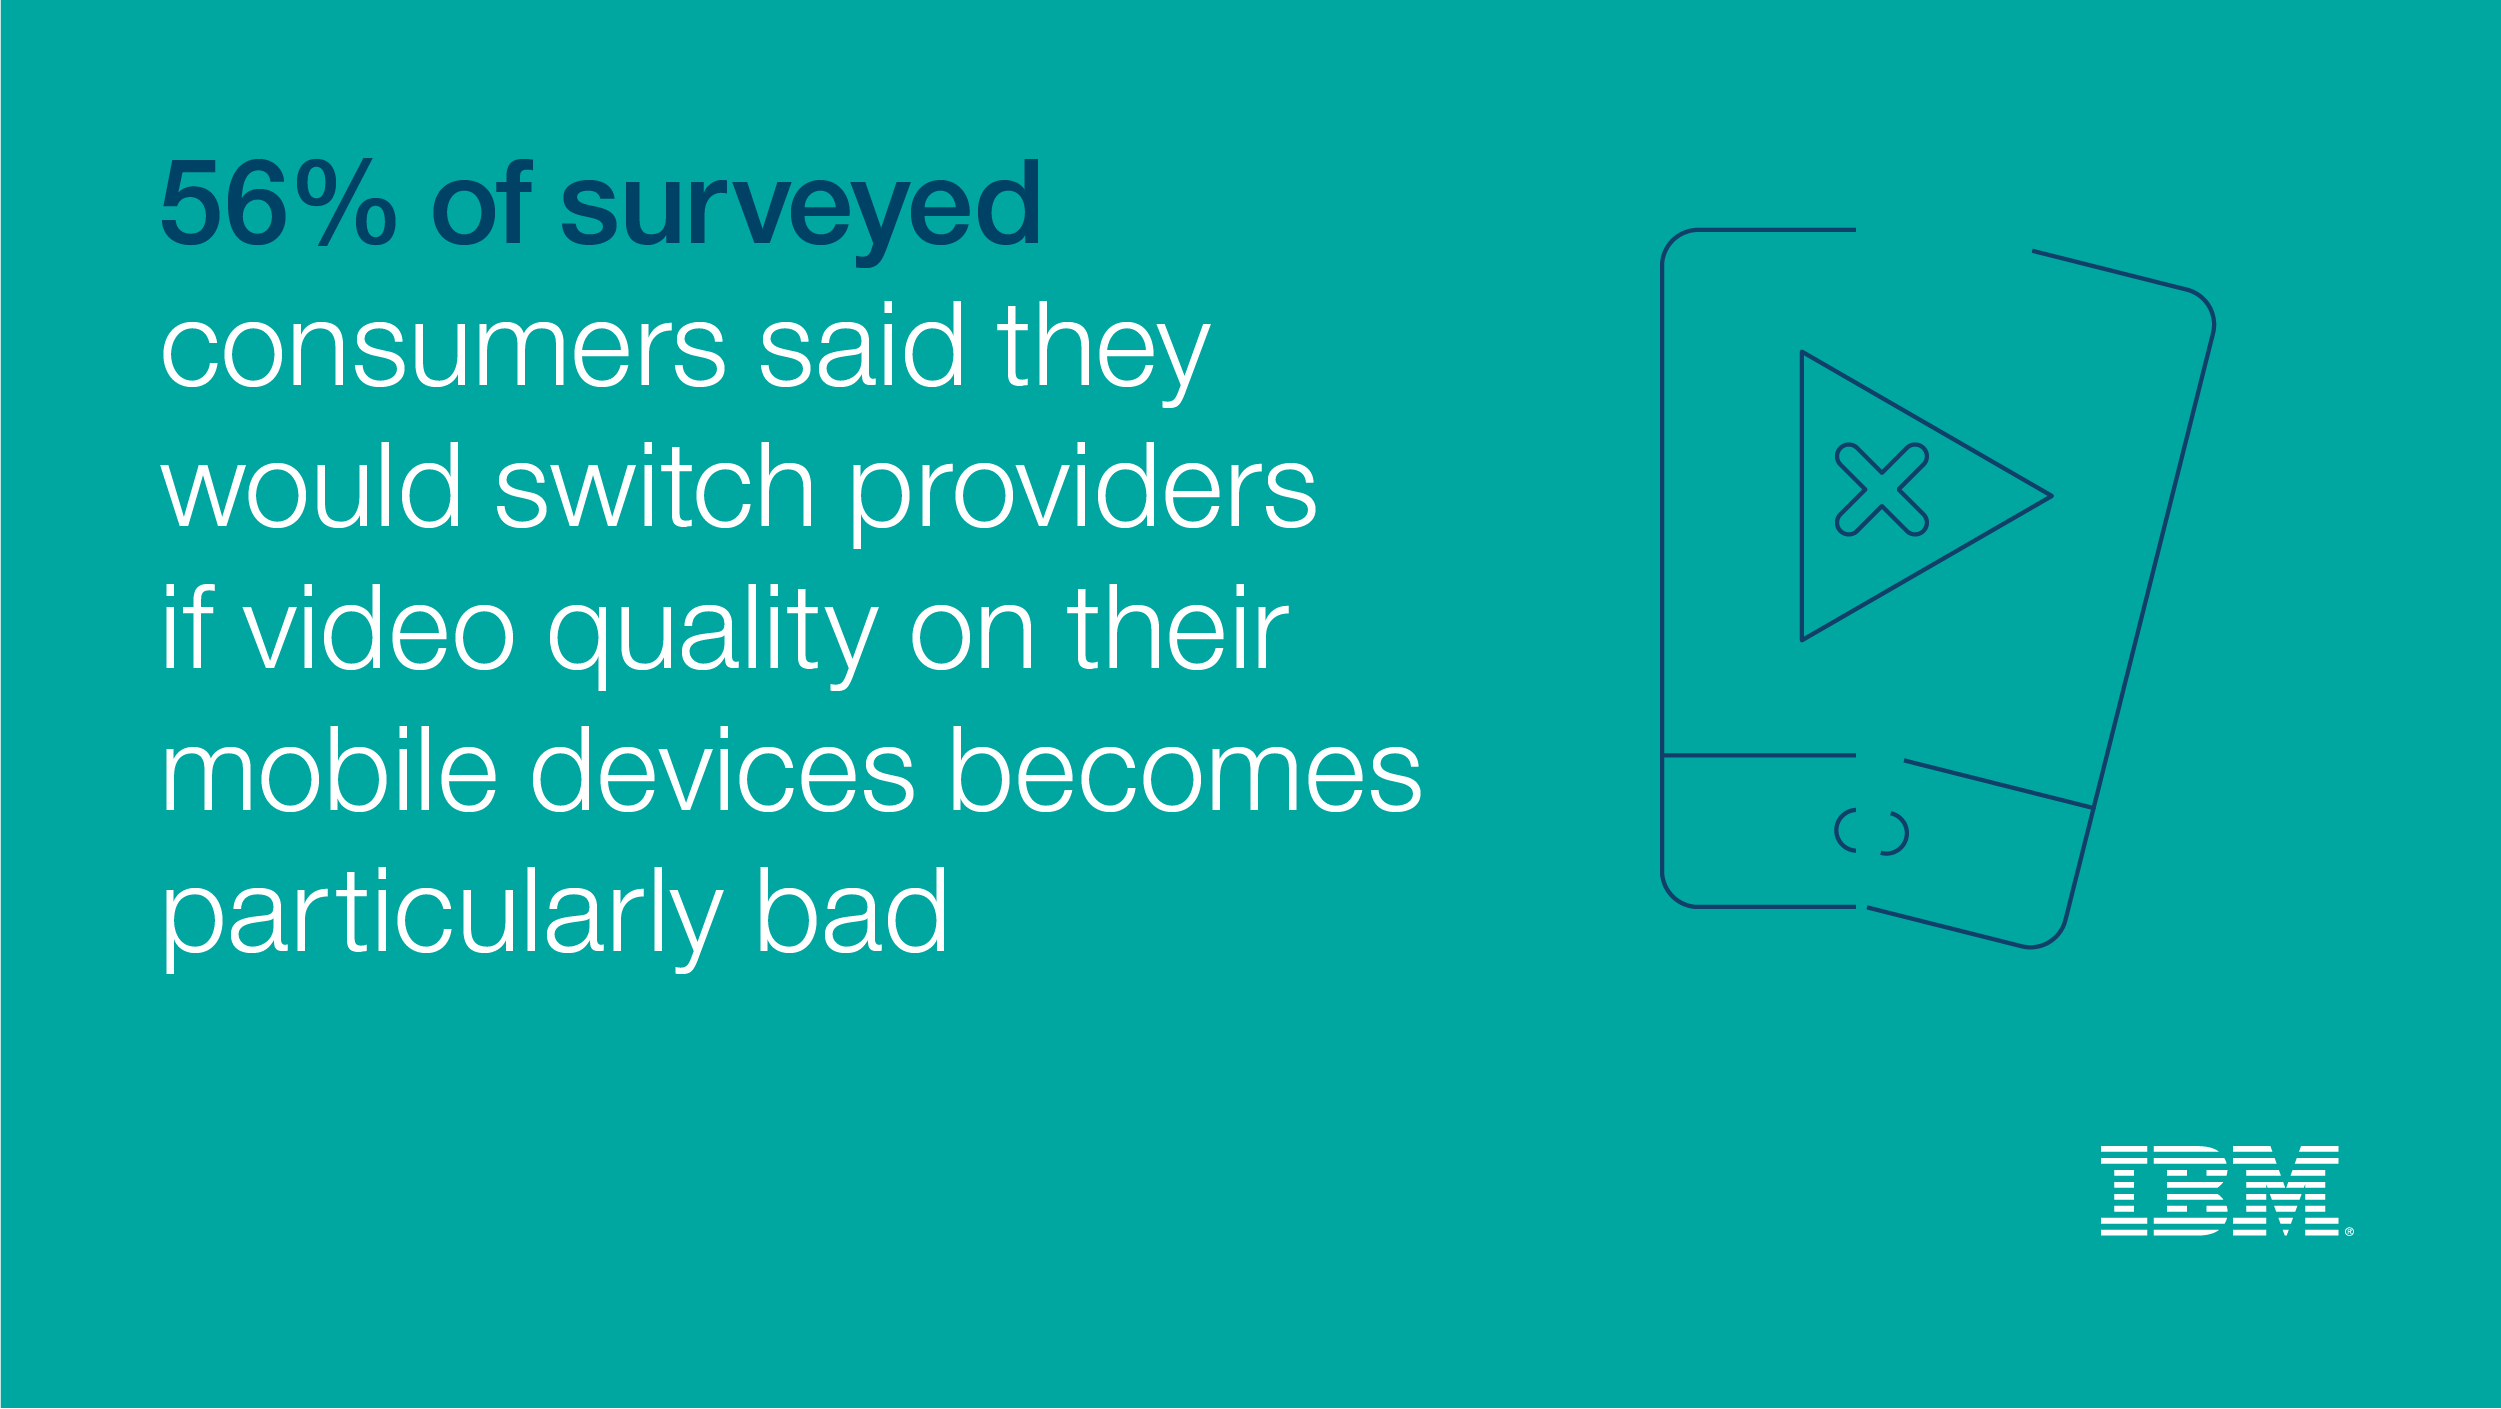 56% of surveyed consumers said they would switch providers if video quality on their mobile devices becomes particularly bad